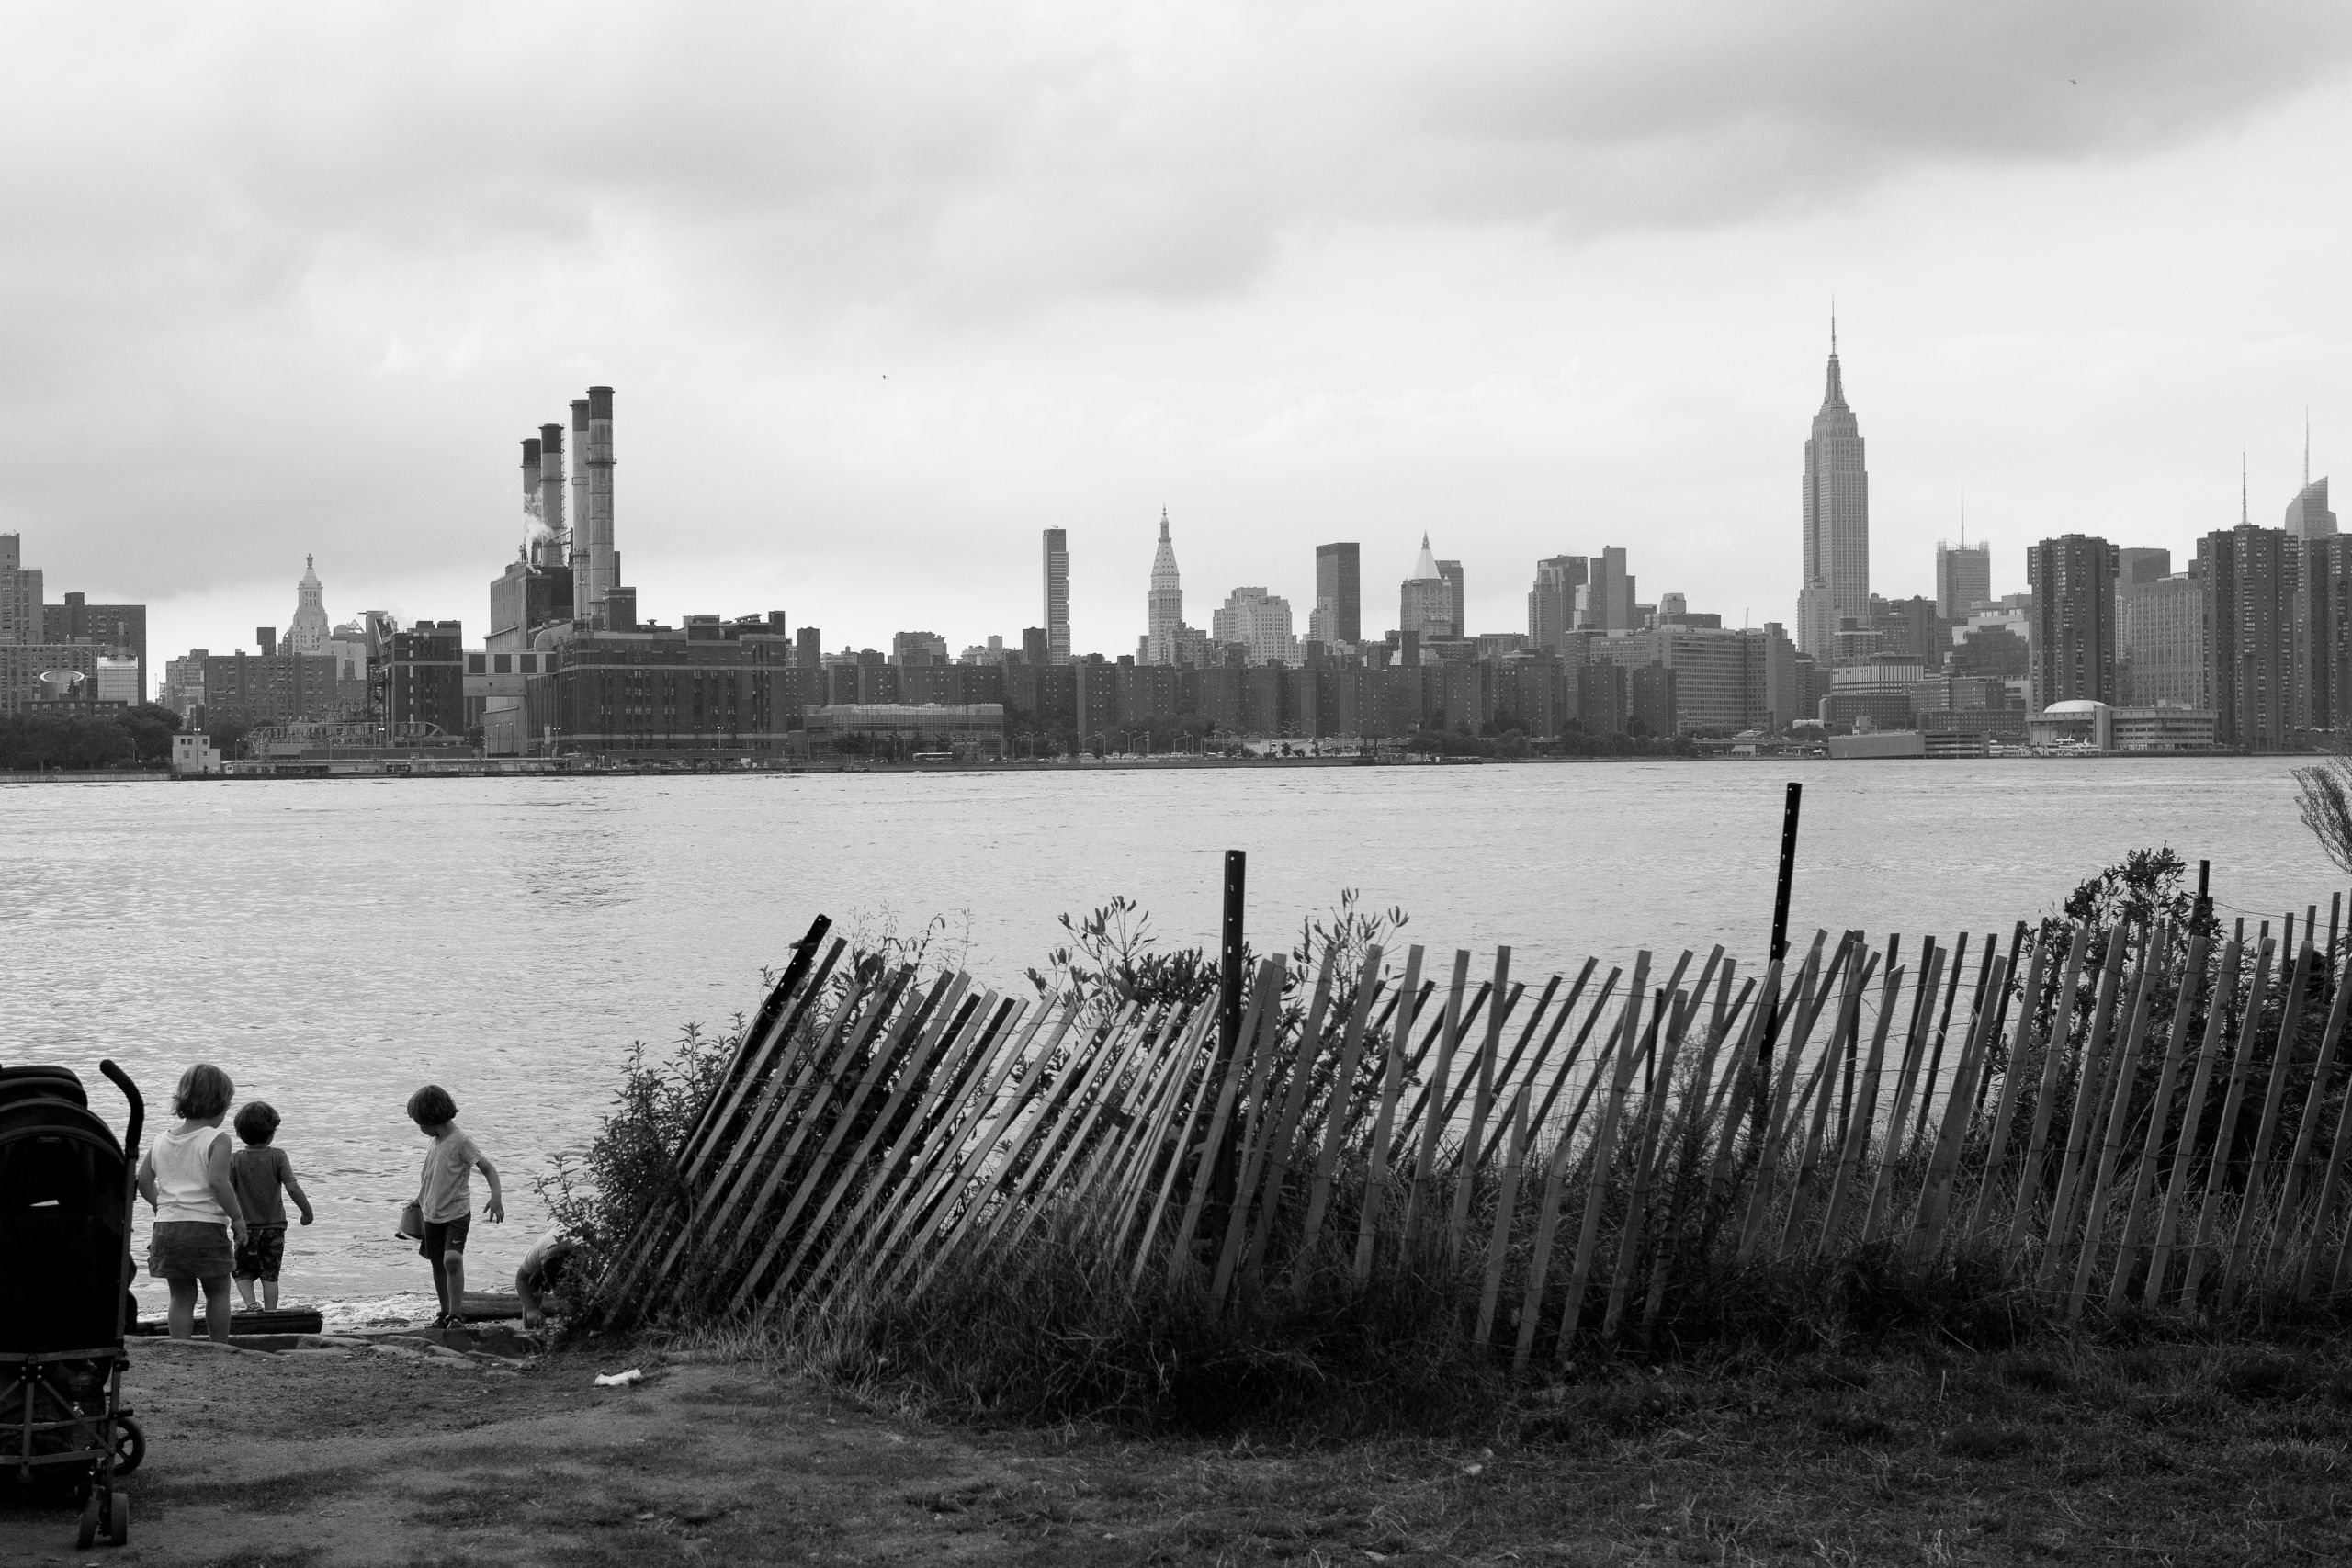 Children play on the beach at East River State Park